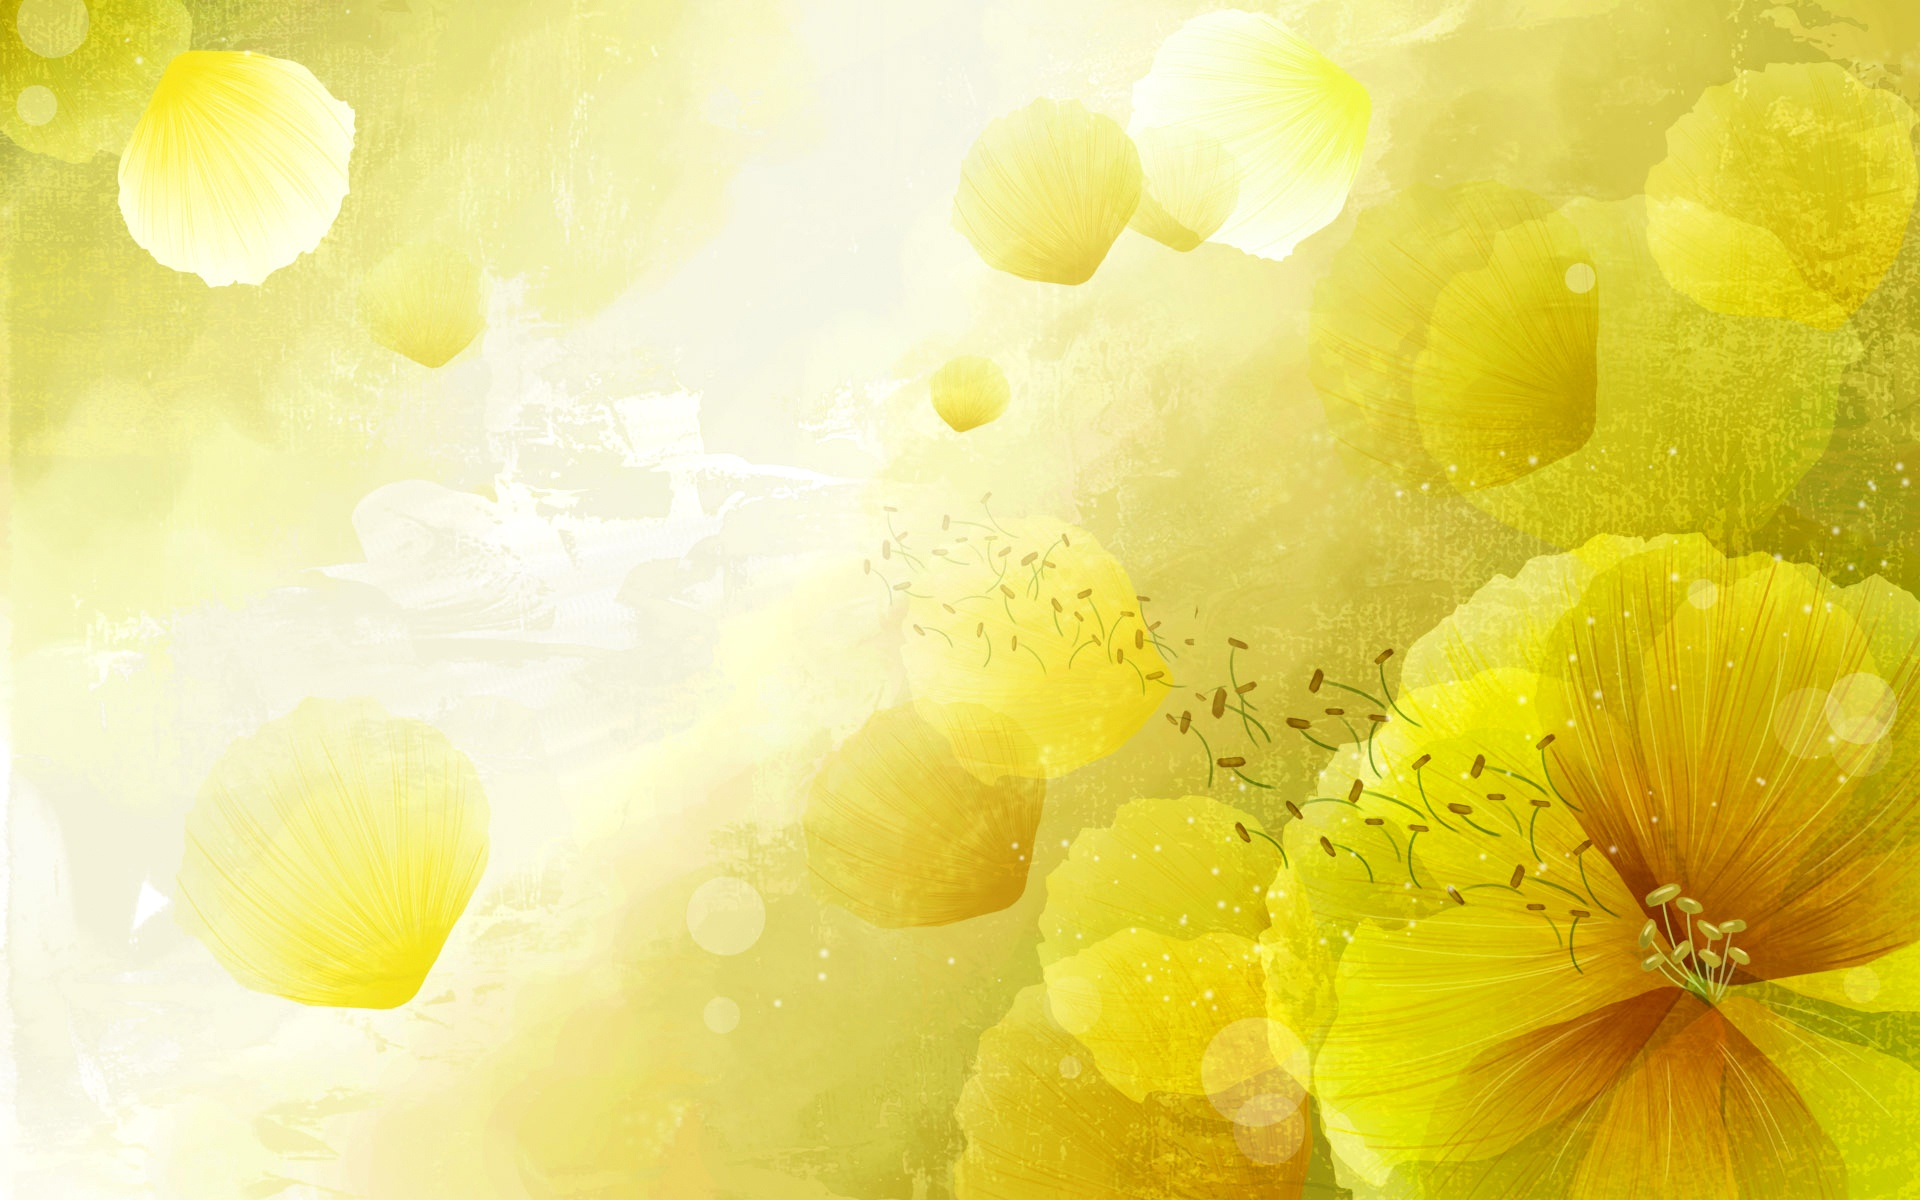 wallpaper yellow flowers background postcard 1920x1200 hd picture image wallpaper yellow flowers background